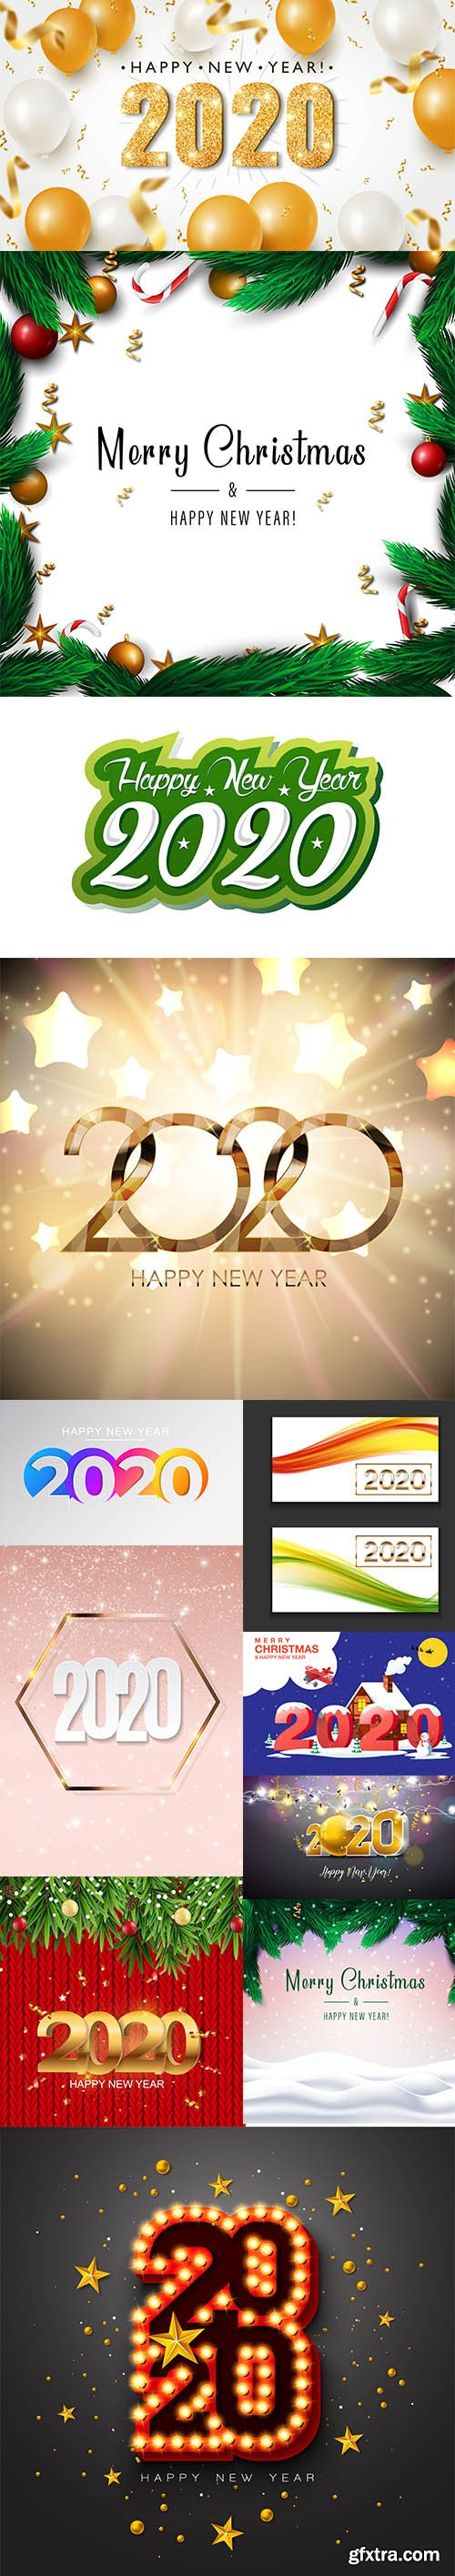 Merry Christmas and New Year 2020 Vector Illustrations Pack Vol 4